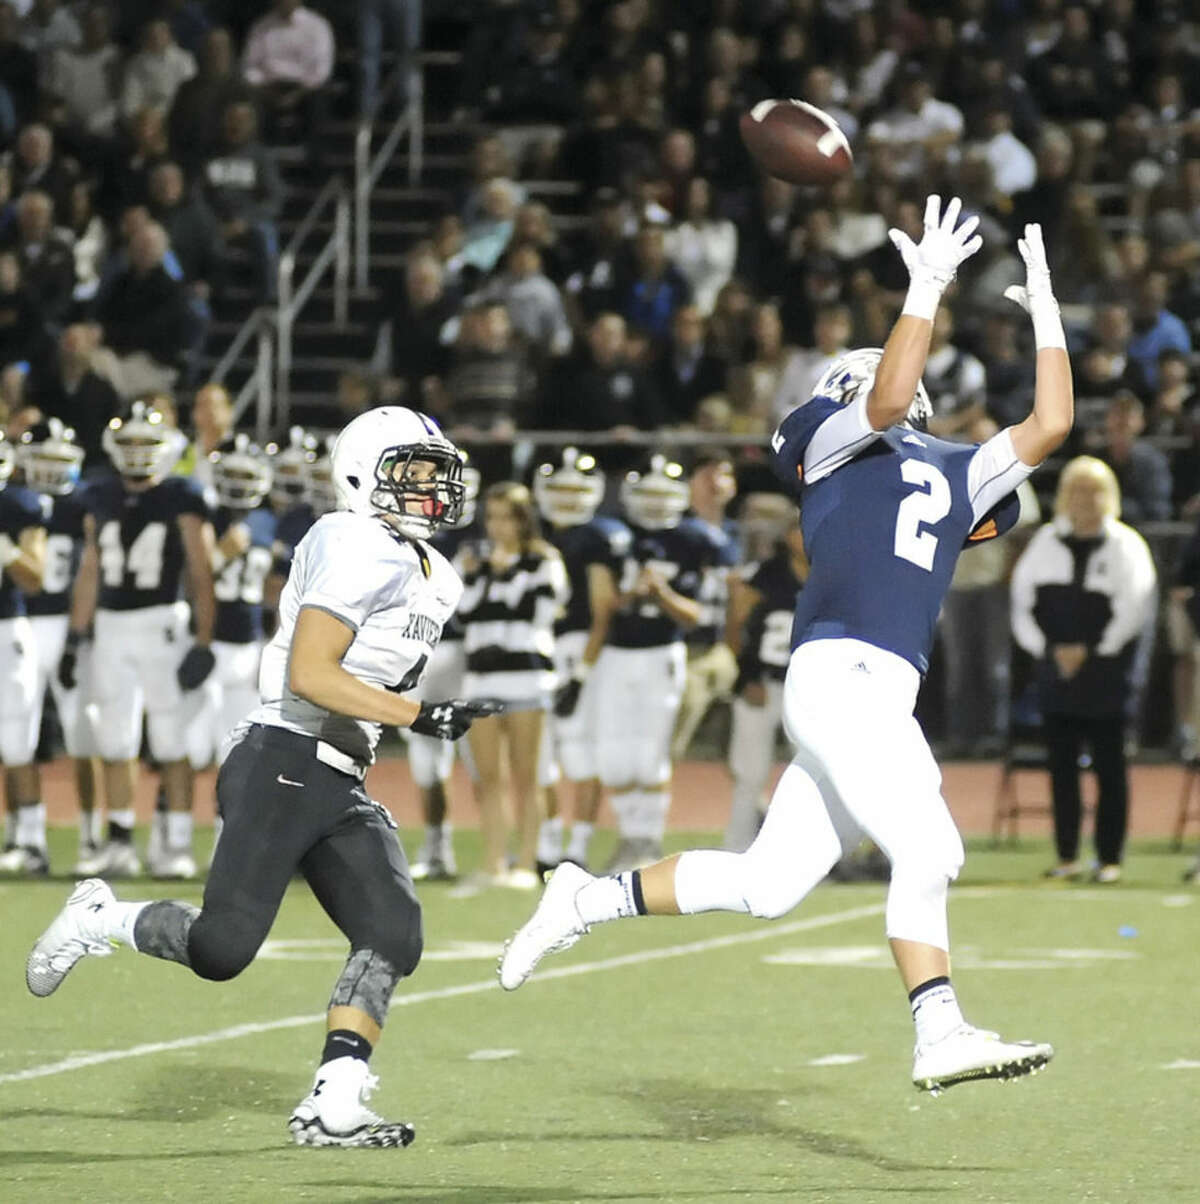 Hour photo/John Nash Staples wide receiver Colin Hoy extends to try to catch a pass as Xavier defensive back Mark Delvecchio closes in.